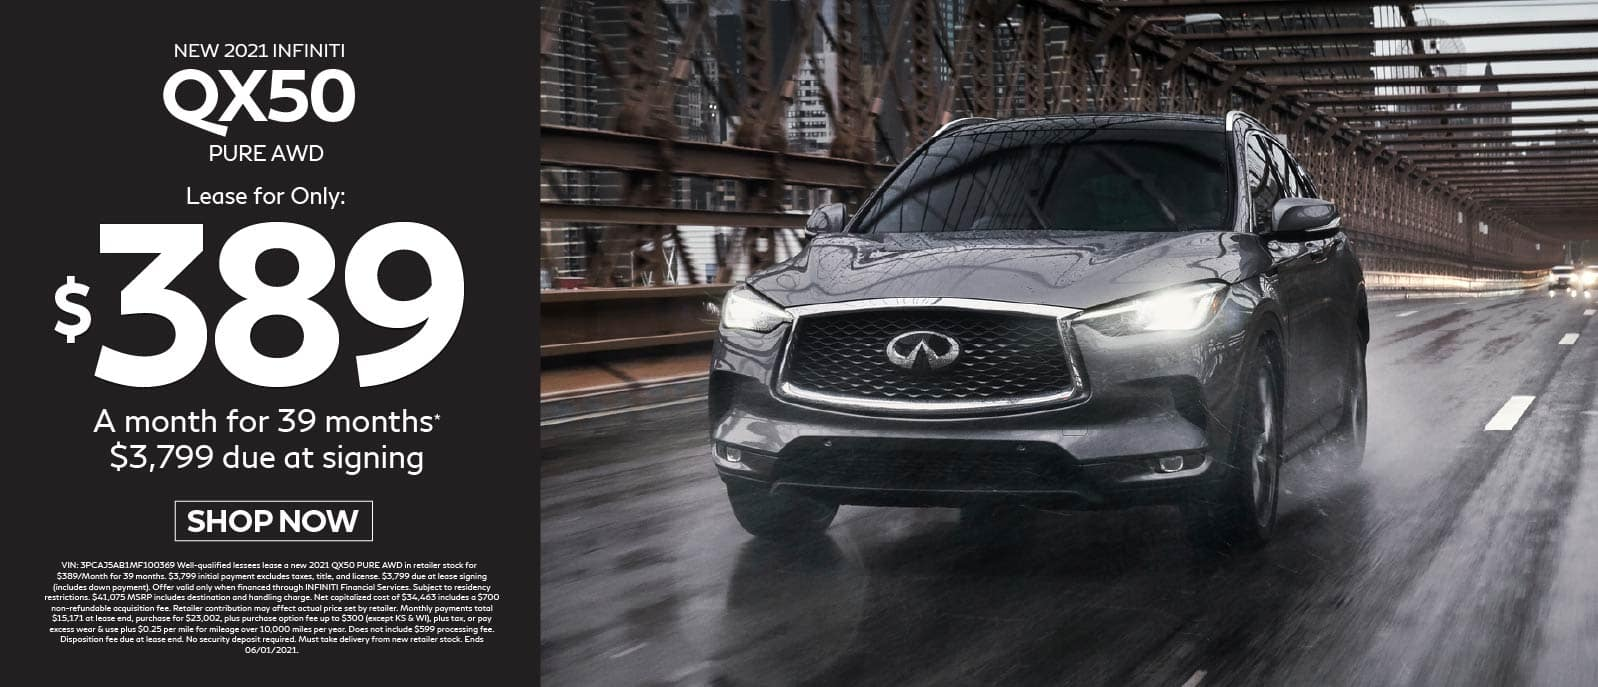 2021 QX50 Luxe AWD lease for only $389 Per month for 39 months $3,799 due at signing. Shop now.